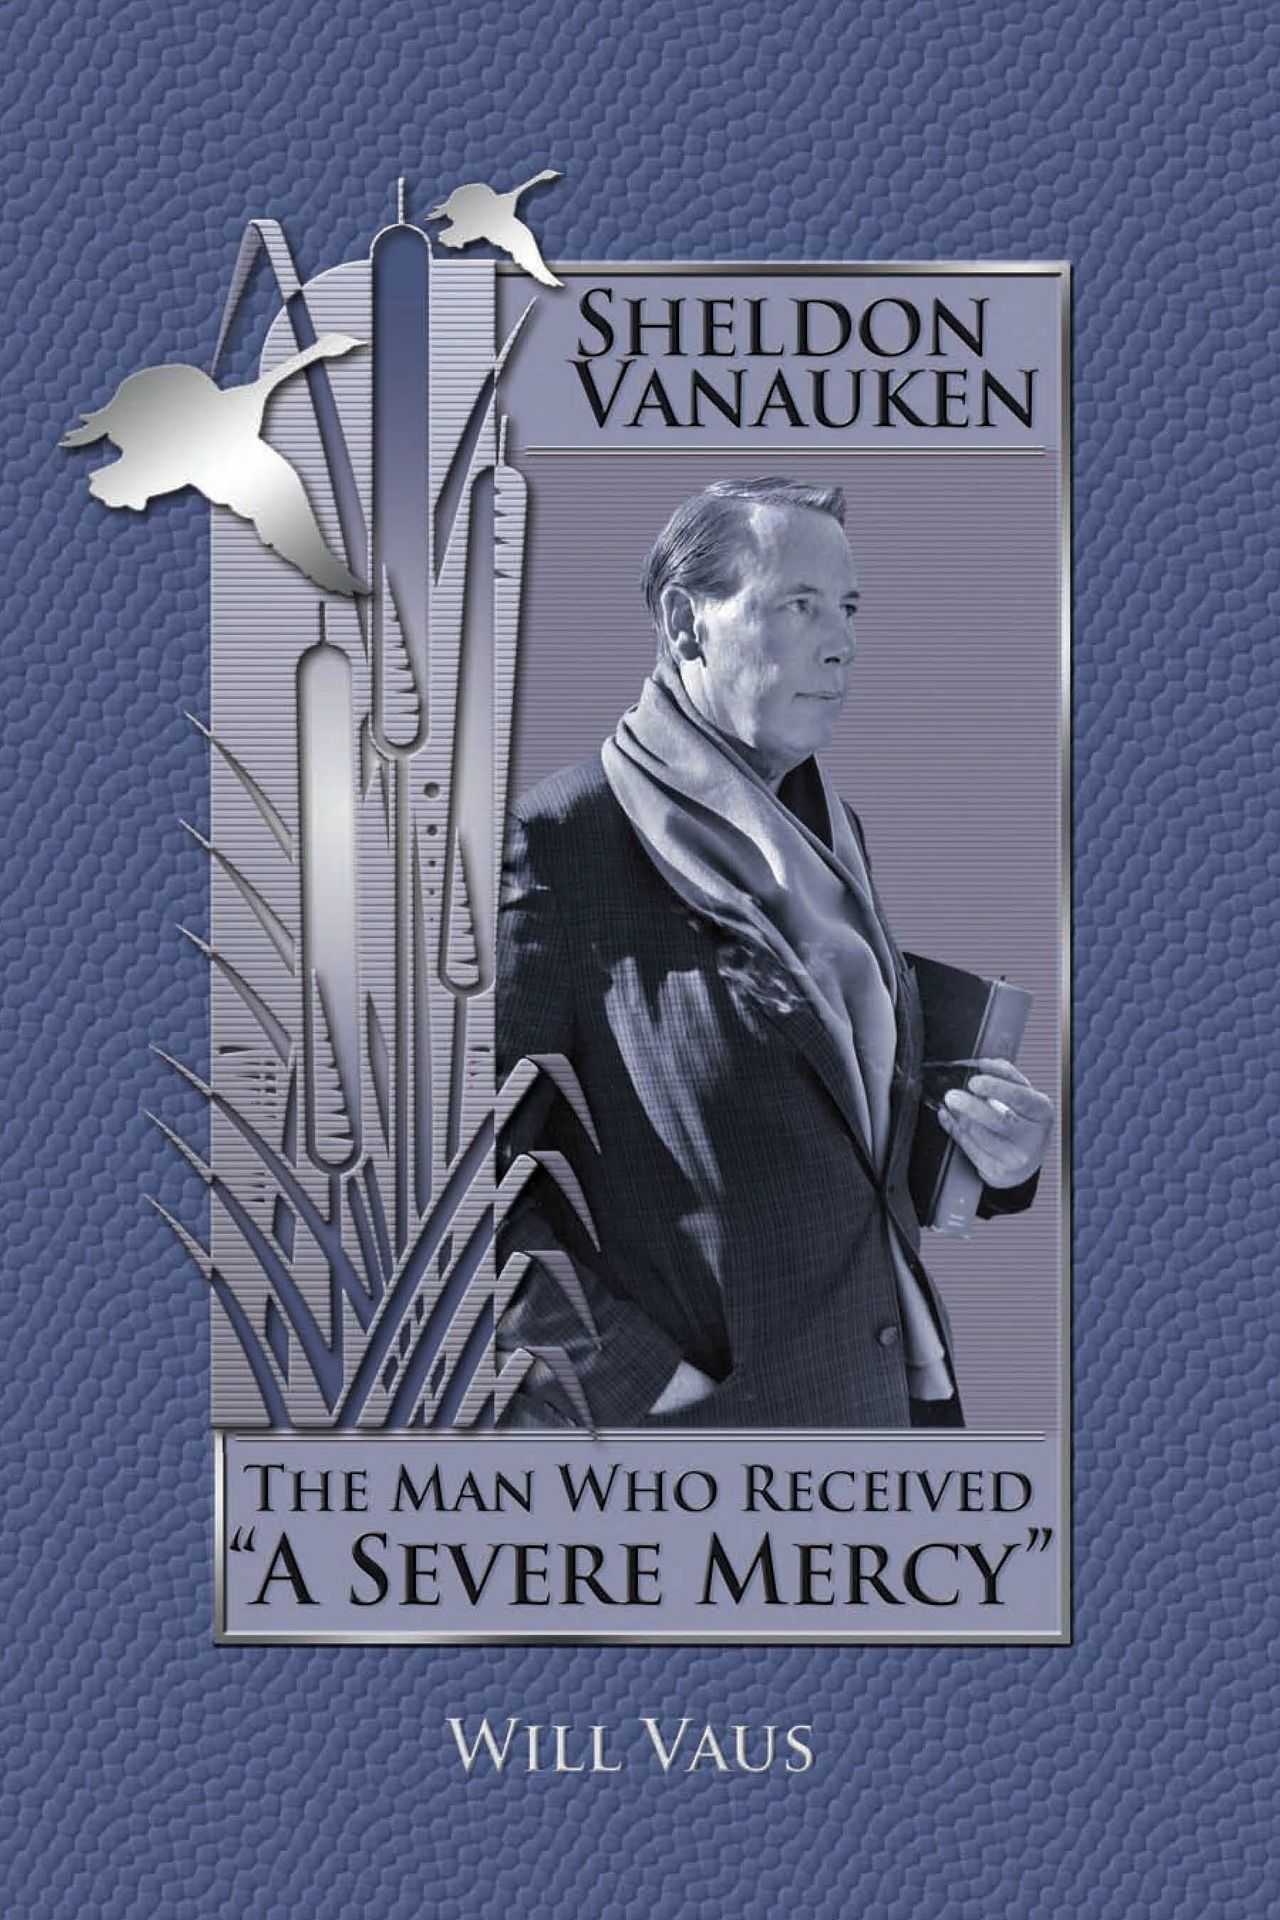 Sheldon Vanauken: The Man Who Received a Severe Mercy